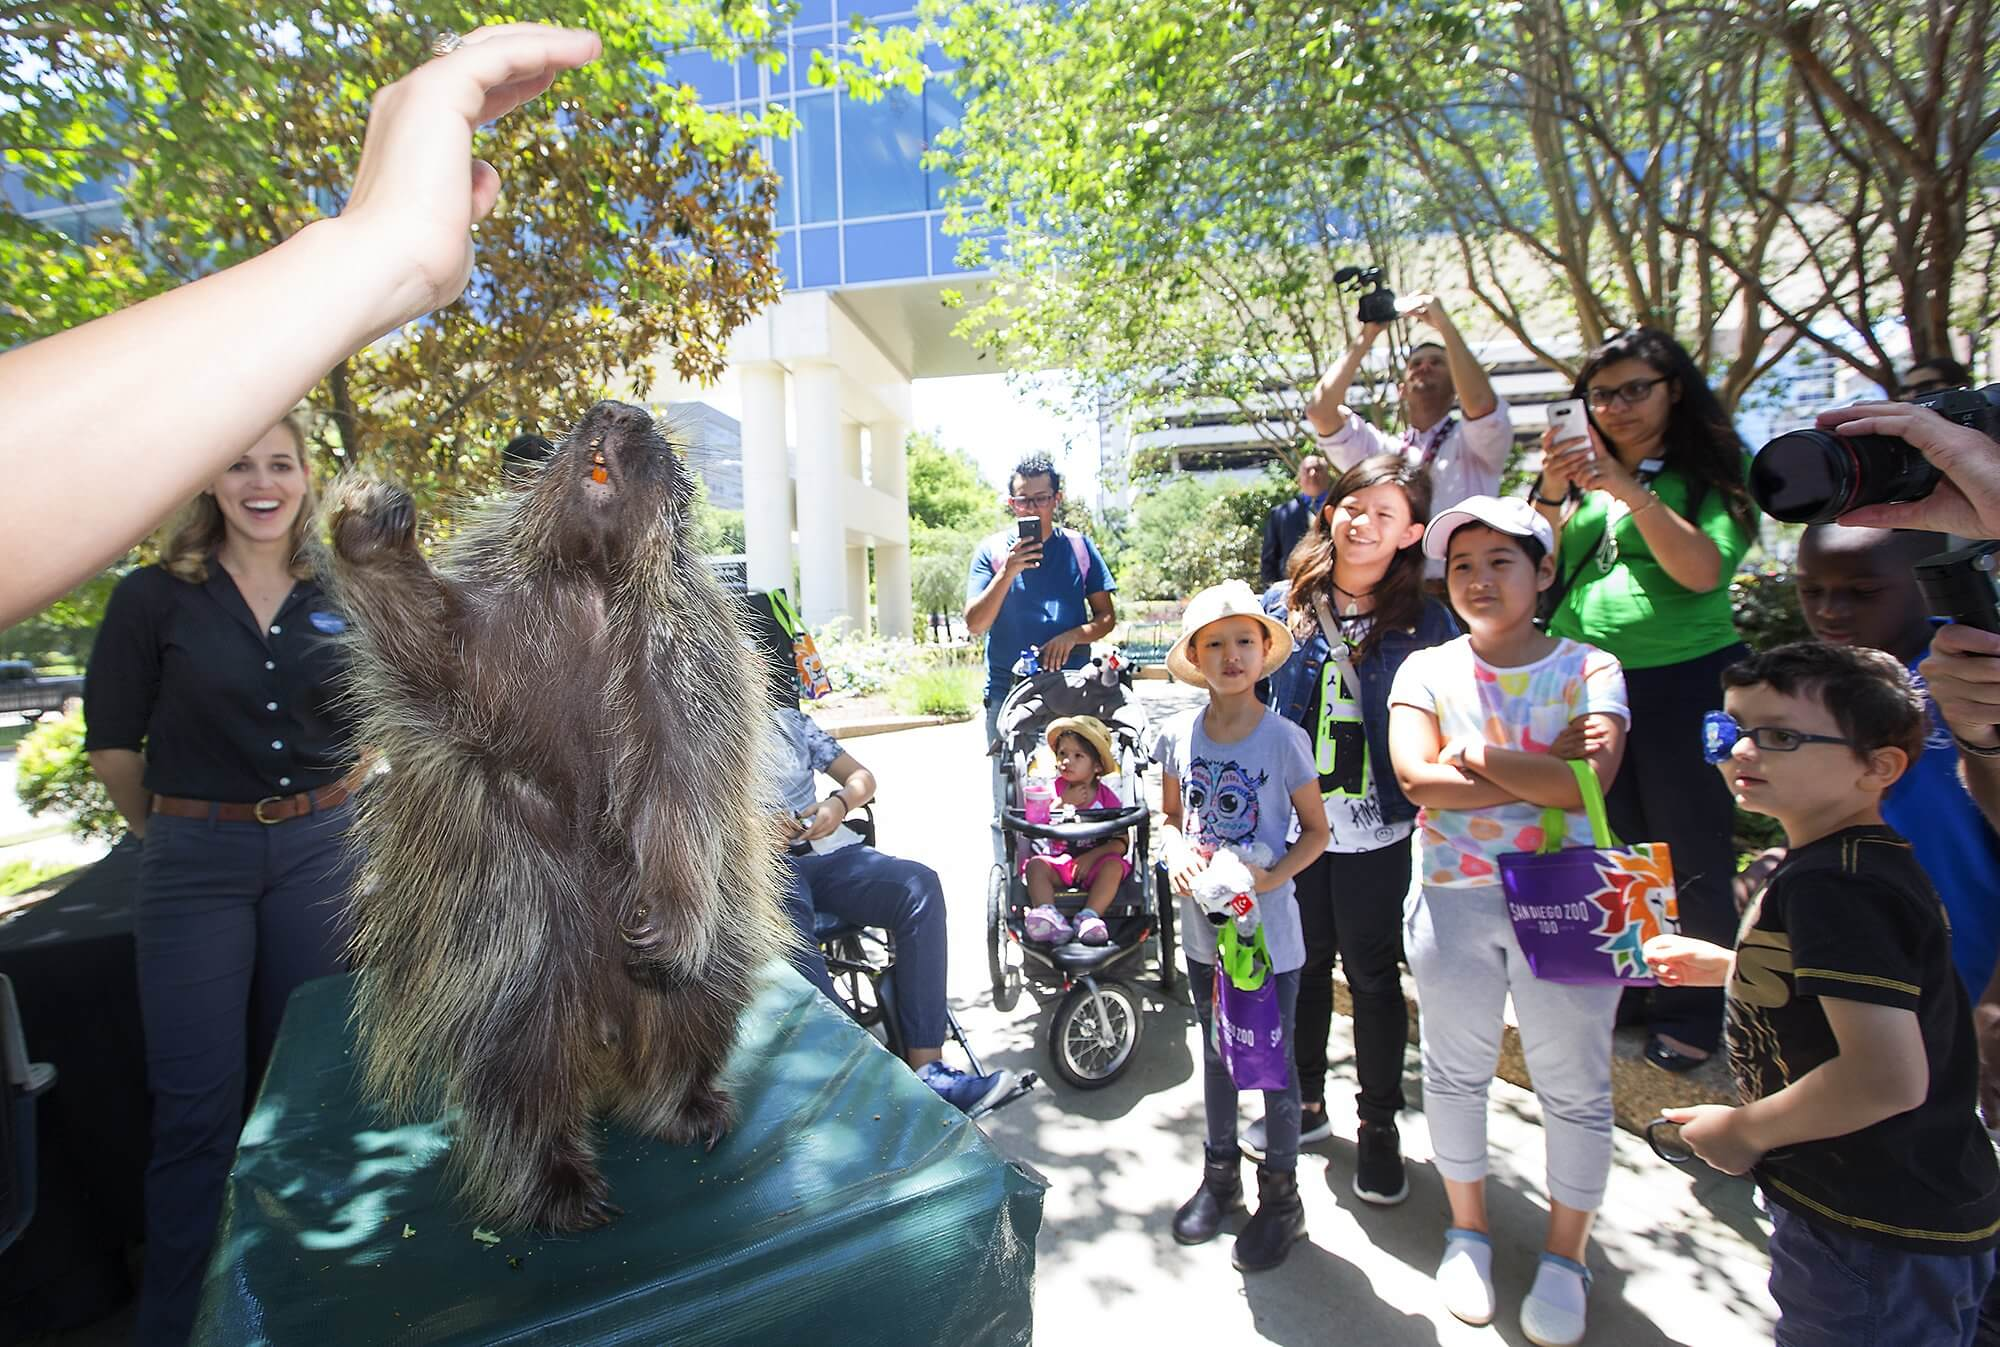 MD Anderson patients gather to learn about the North American porcupine who lives at the Houston Zoo.